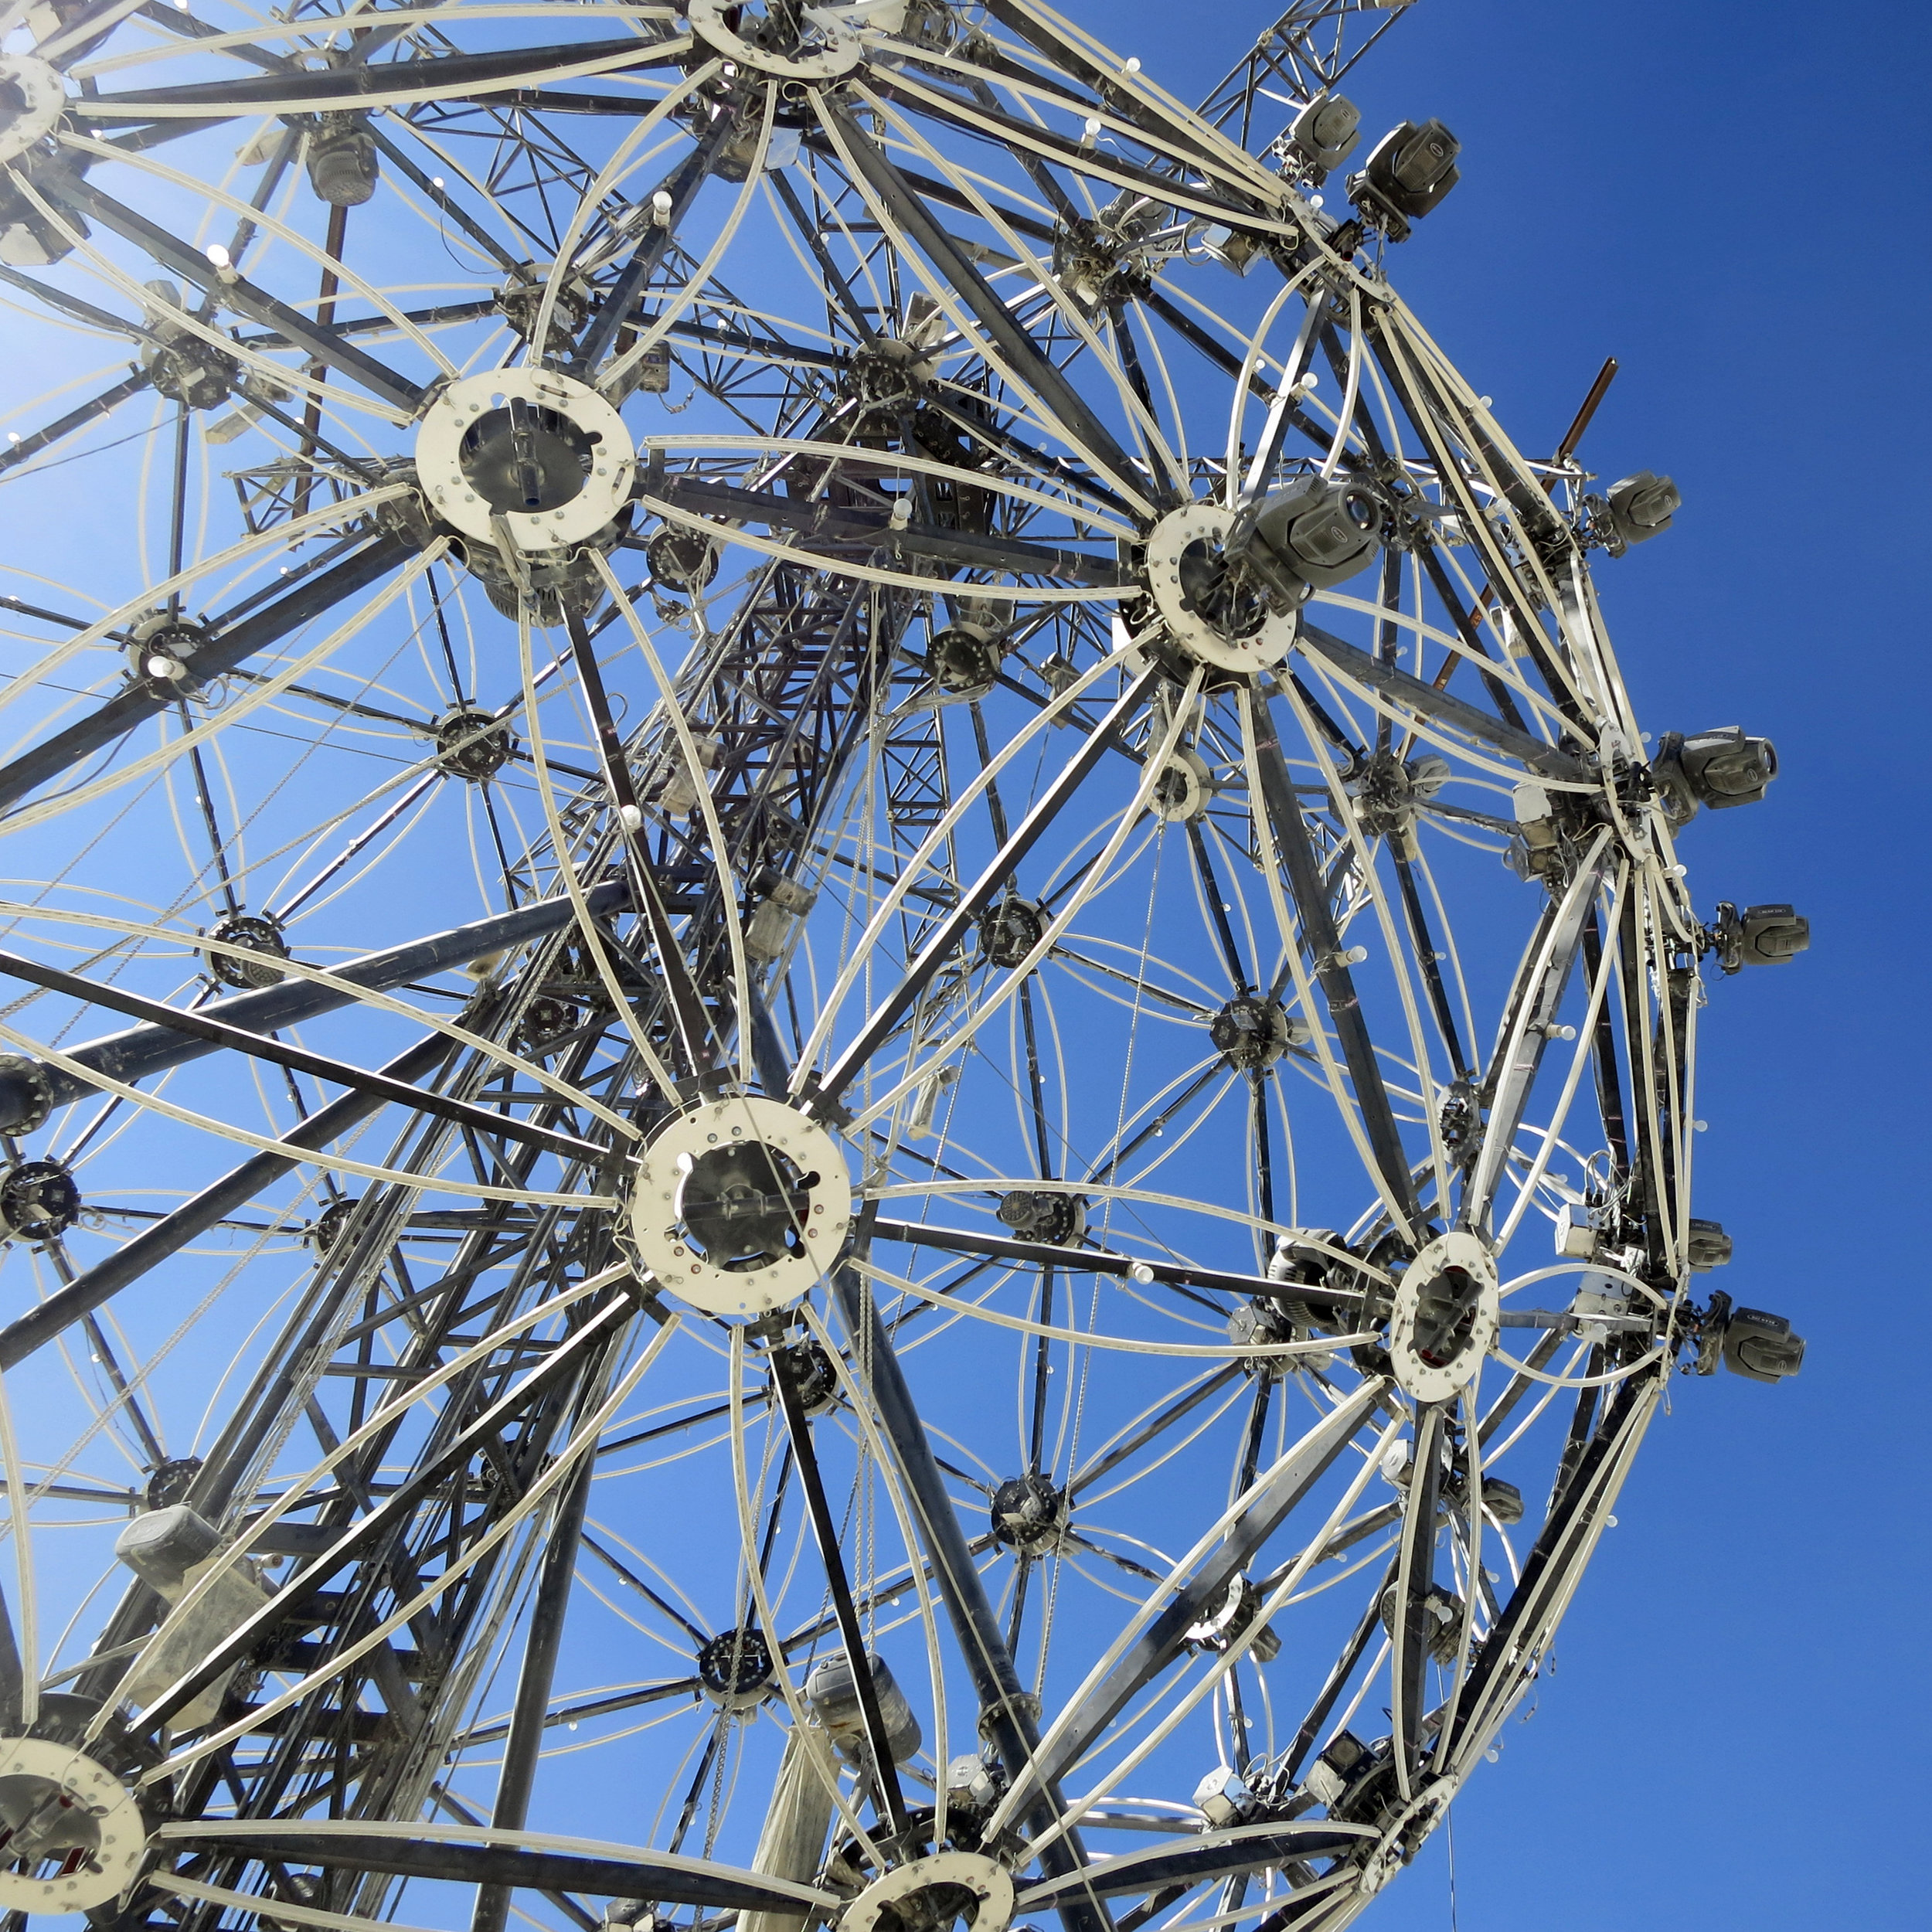 A gigantic, mechanical latticework orb contrasts the desert sky. The Ball by L'Enclave, 2015